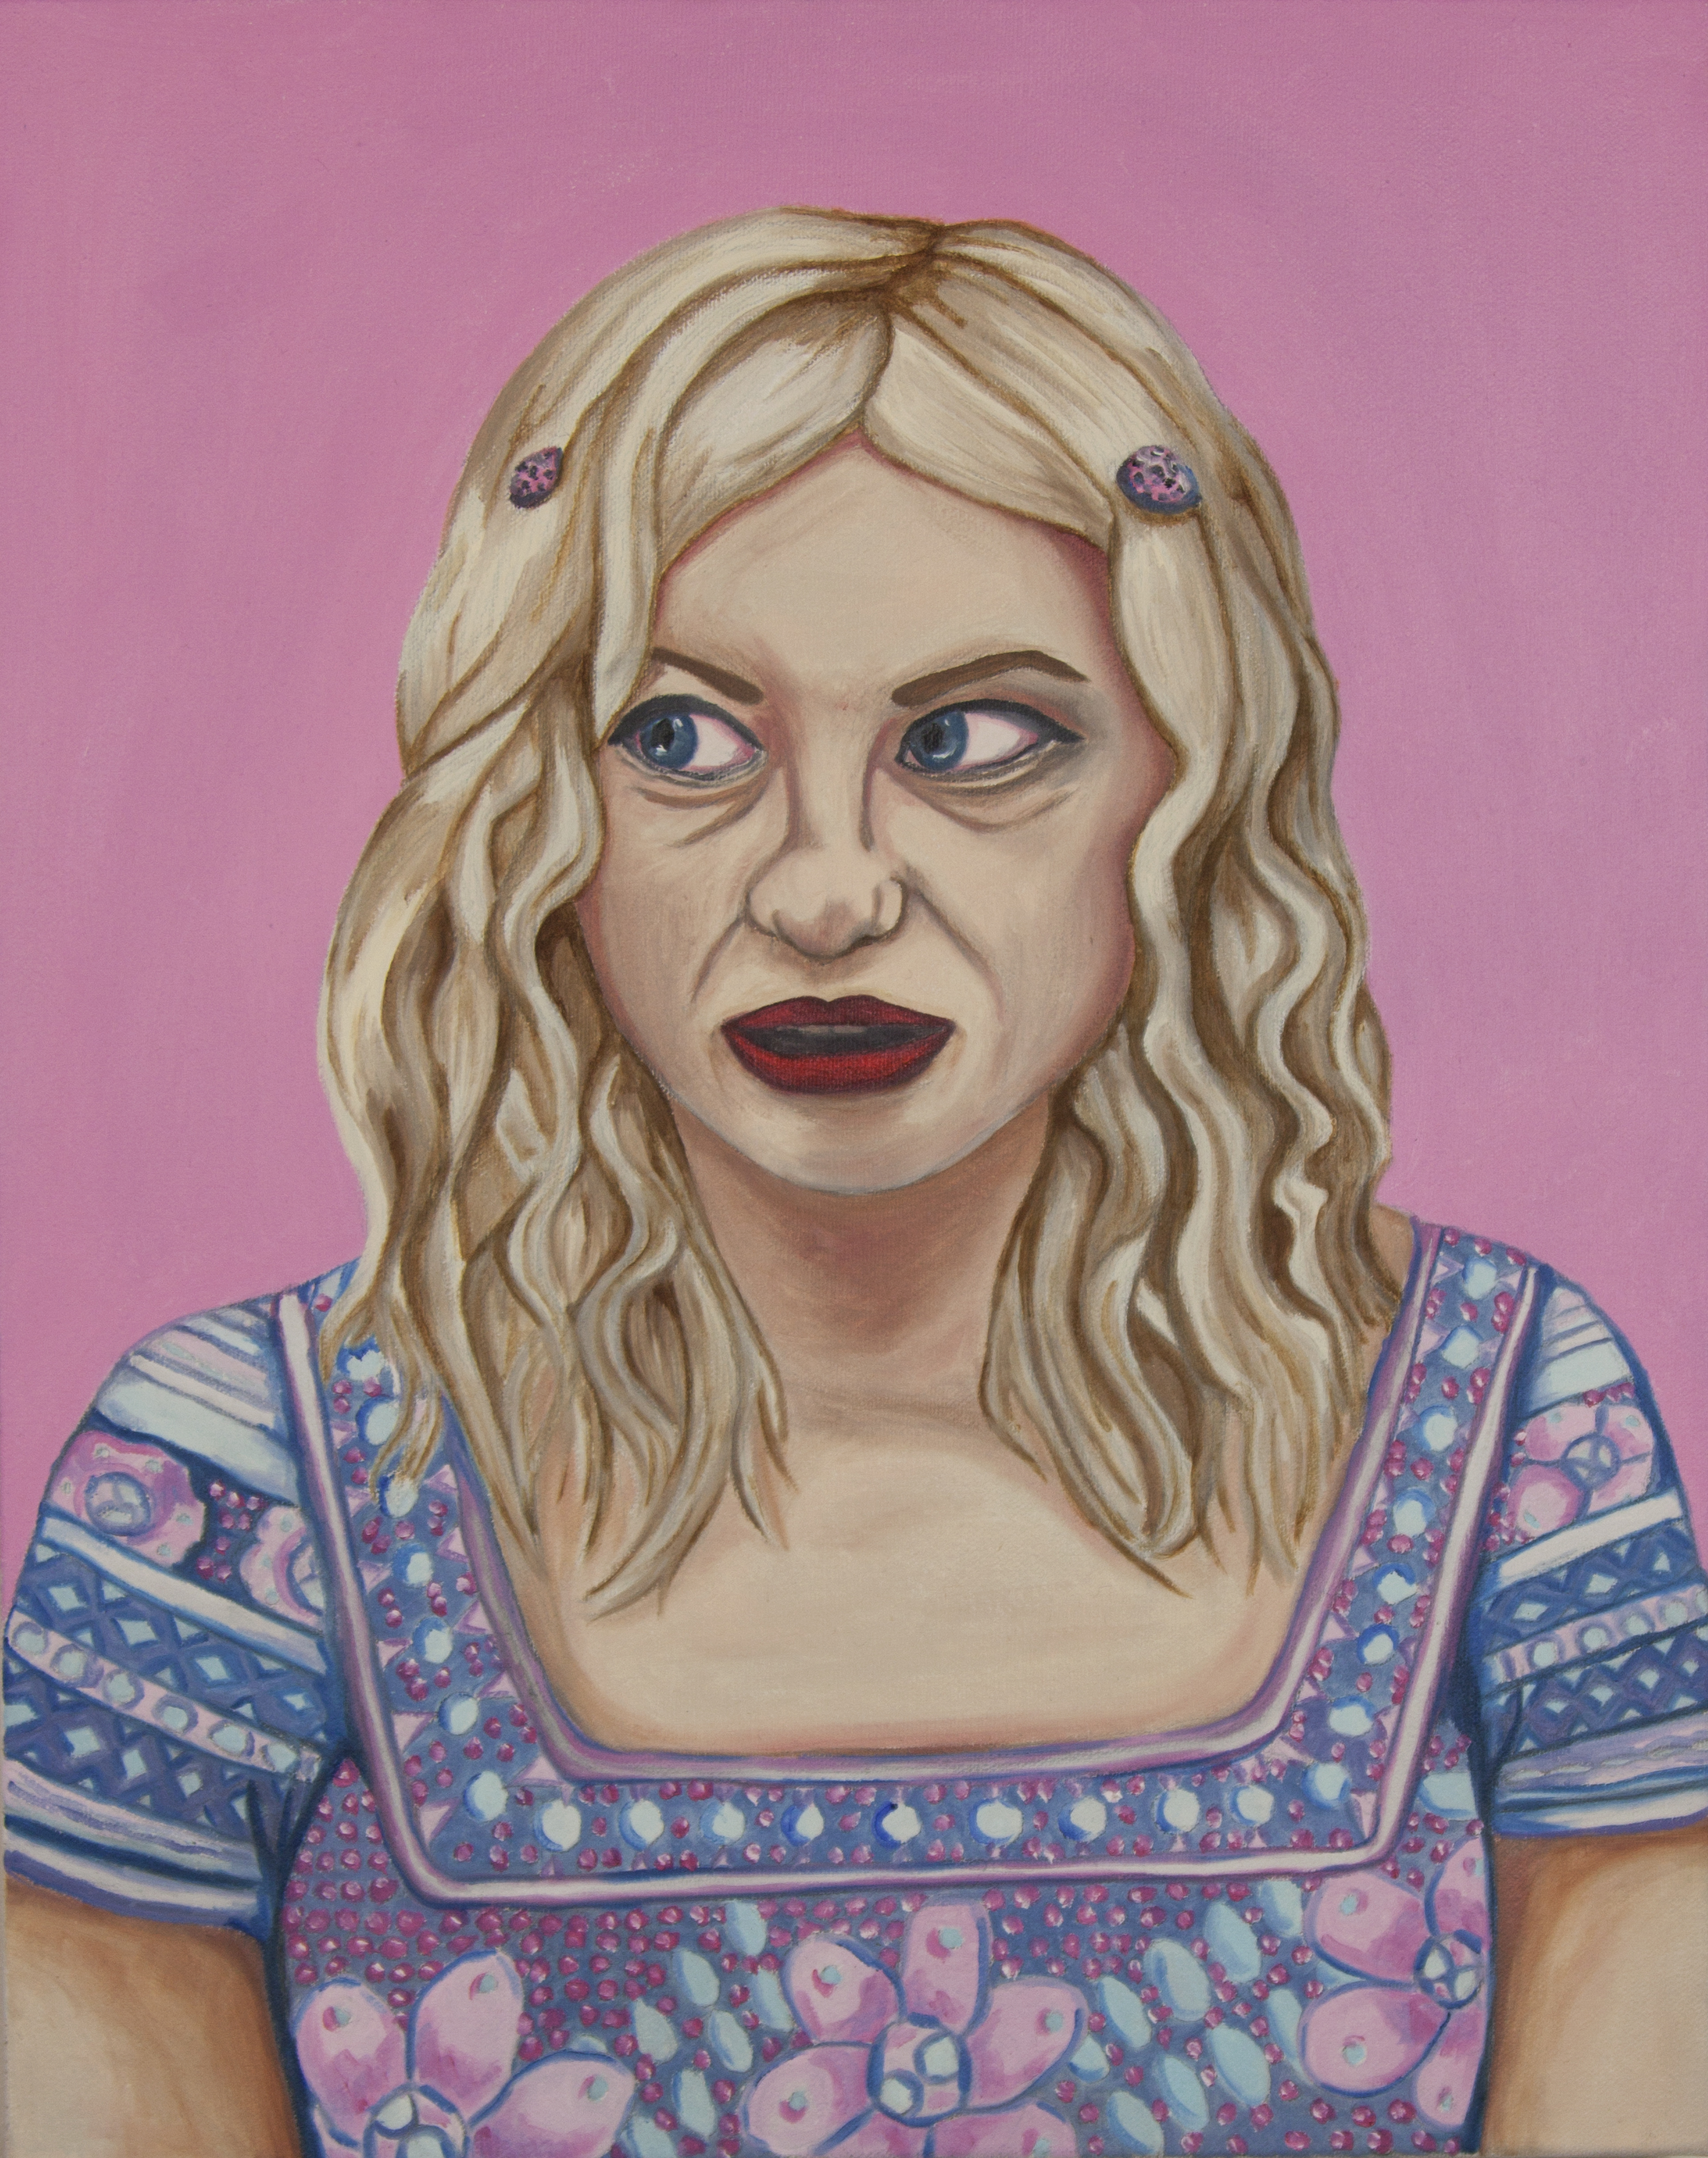 Self-Portrait as Kat Bjelland